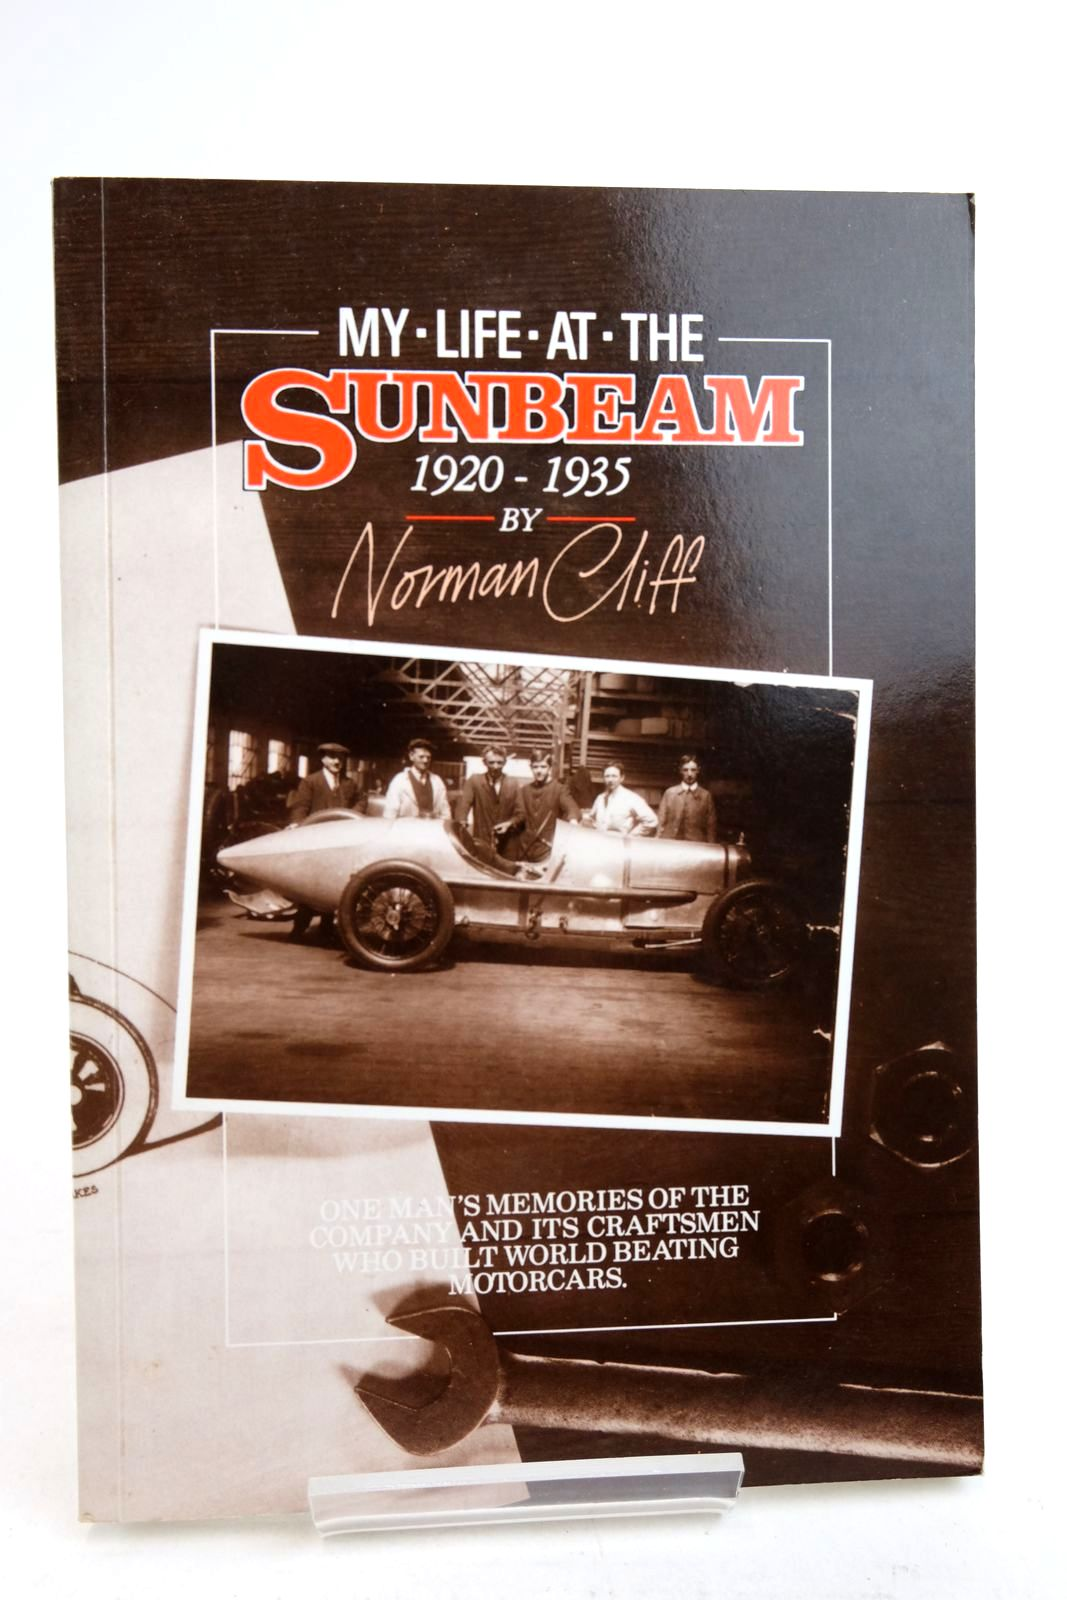 Photo of MY LIFE AT THE SUNBEAM 1920 - 1935 written by Cliff, Norman published by Ashley James Limited (STOCK CODE: 2134596)  for sale by Stella & Rose's Books